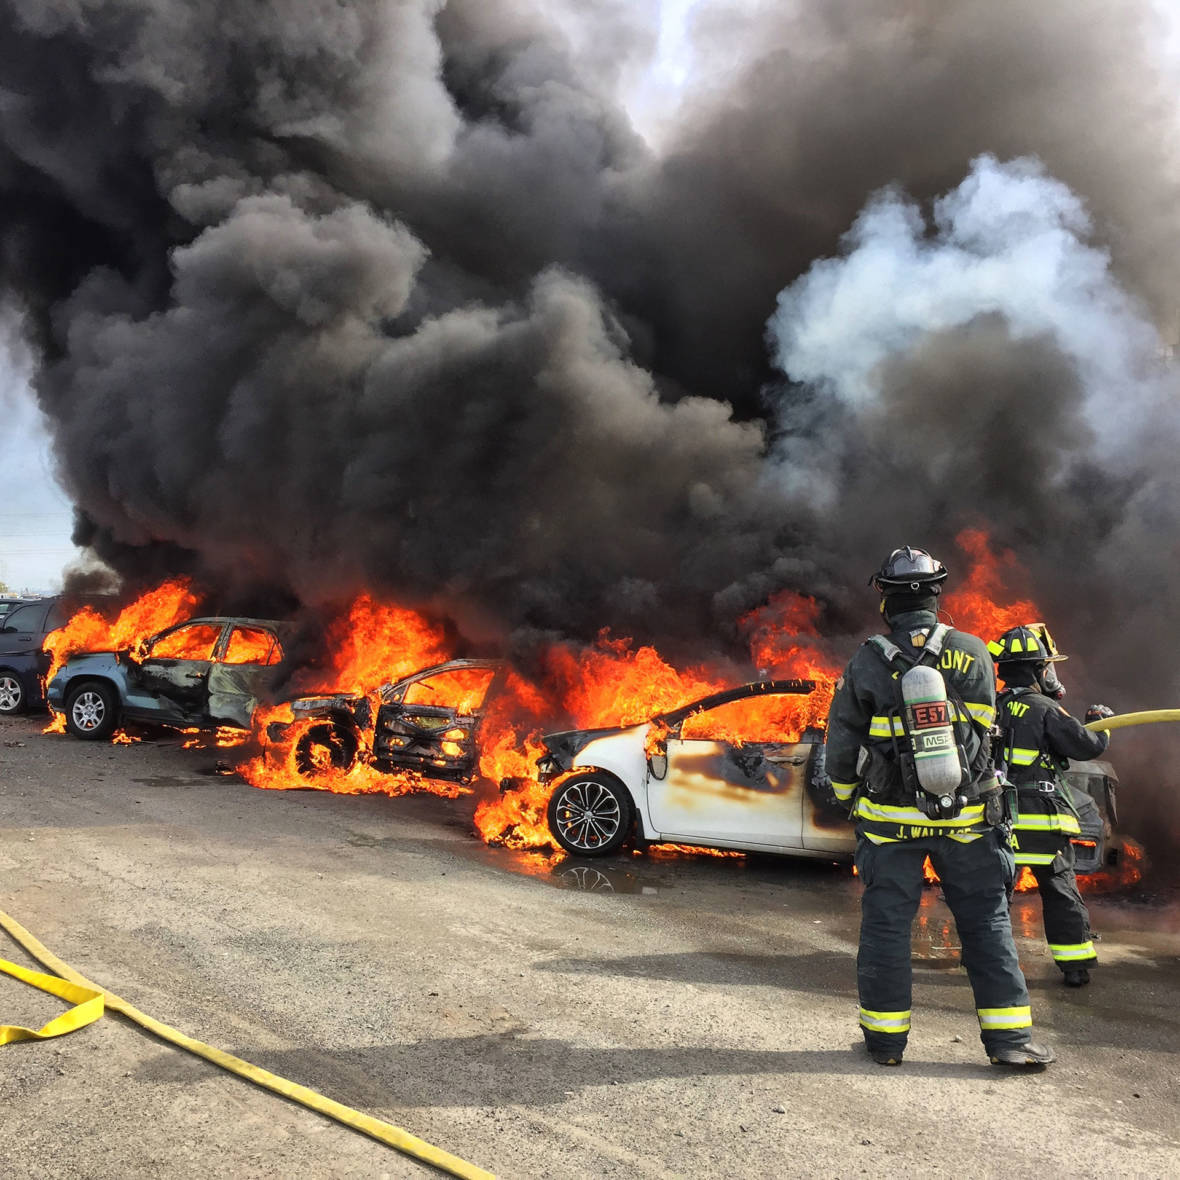 Fire That Torched Dozens of Cars in Fremont Deemed Suspicious